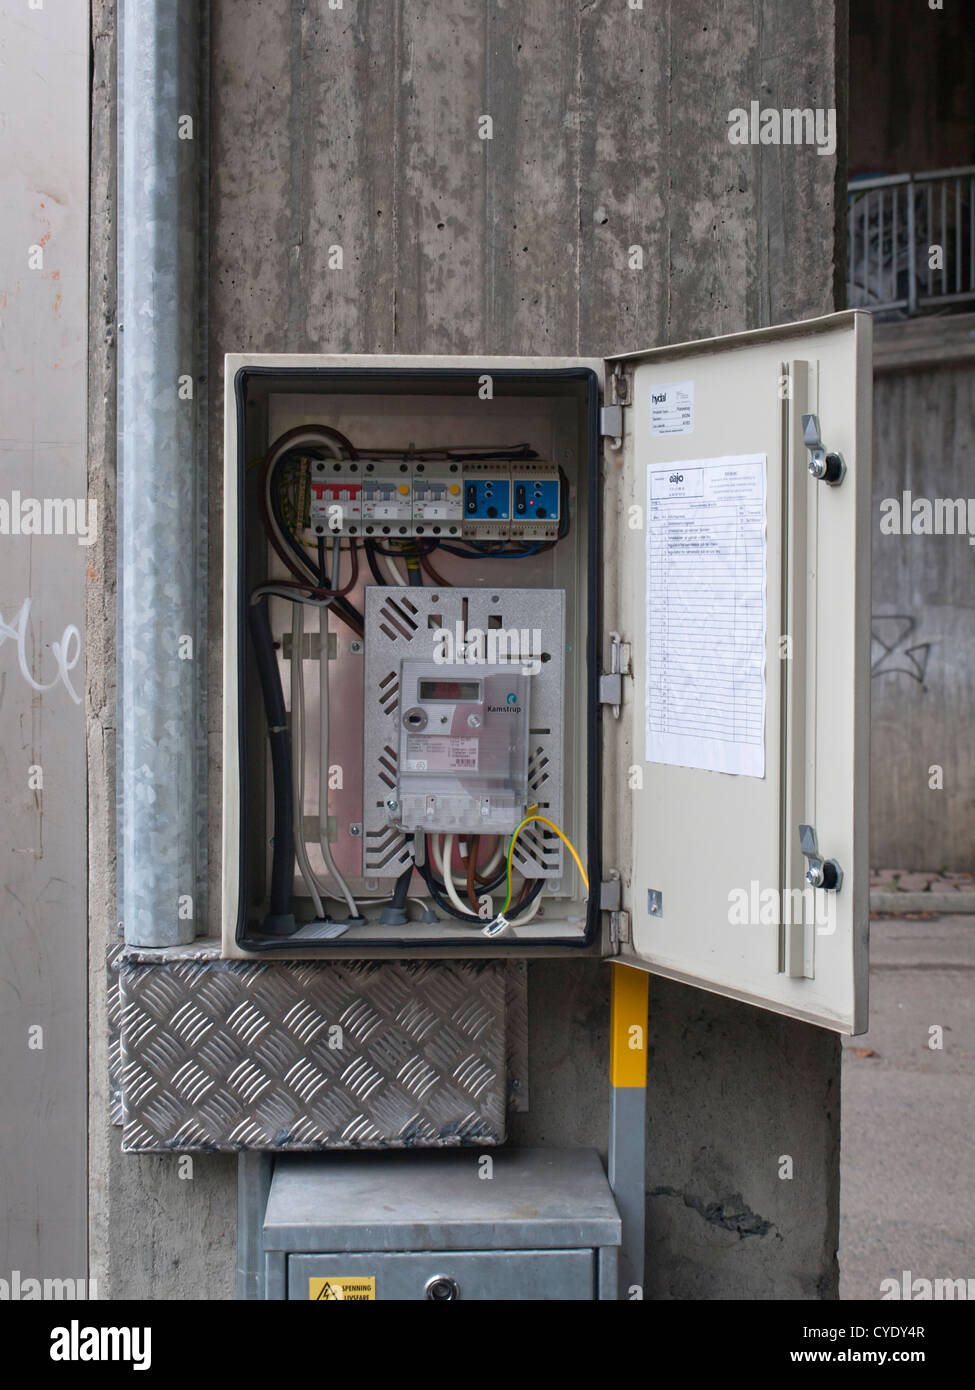 Outstanding Outdoors Electrical Junction Connection Or Fuse Box Open For Wiring Digital Resources Minagakbiperorg